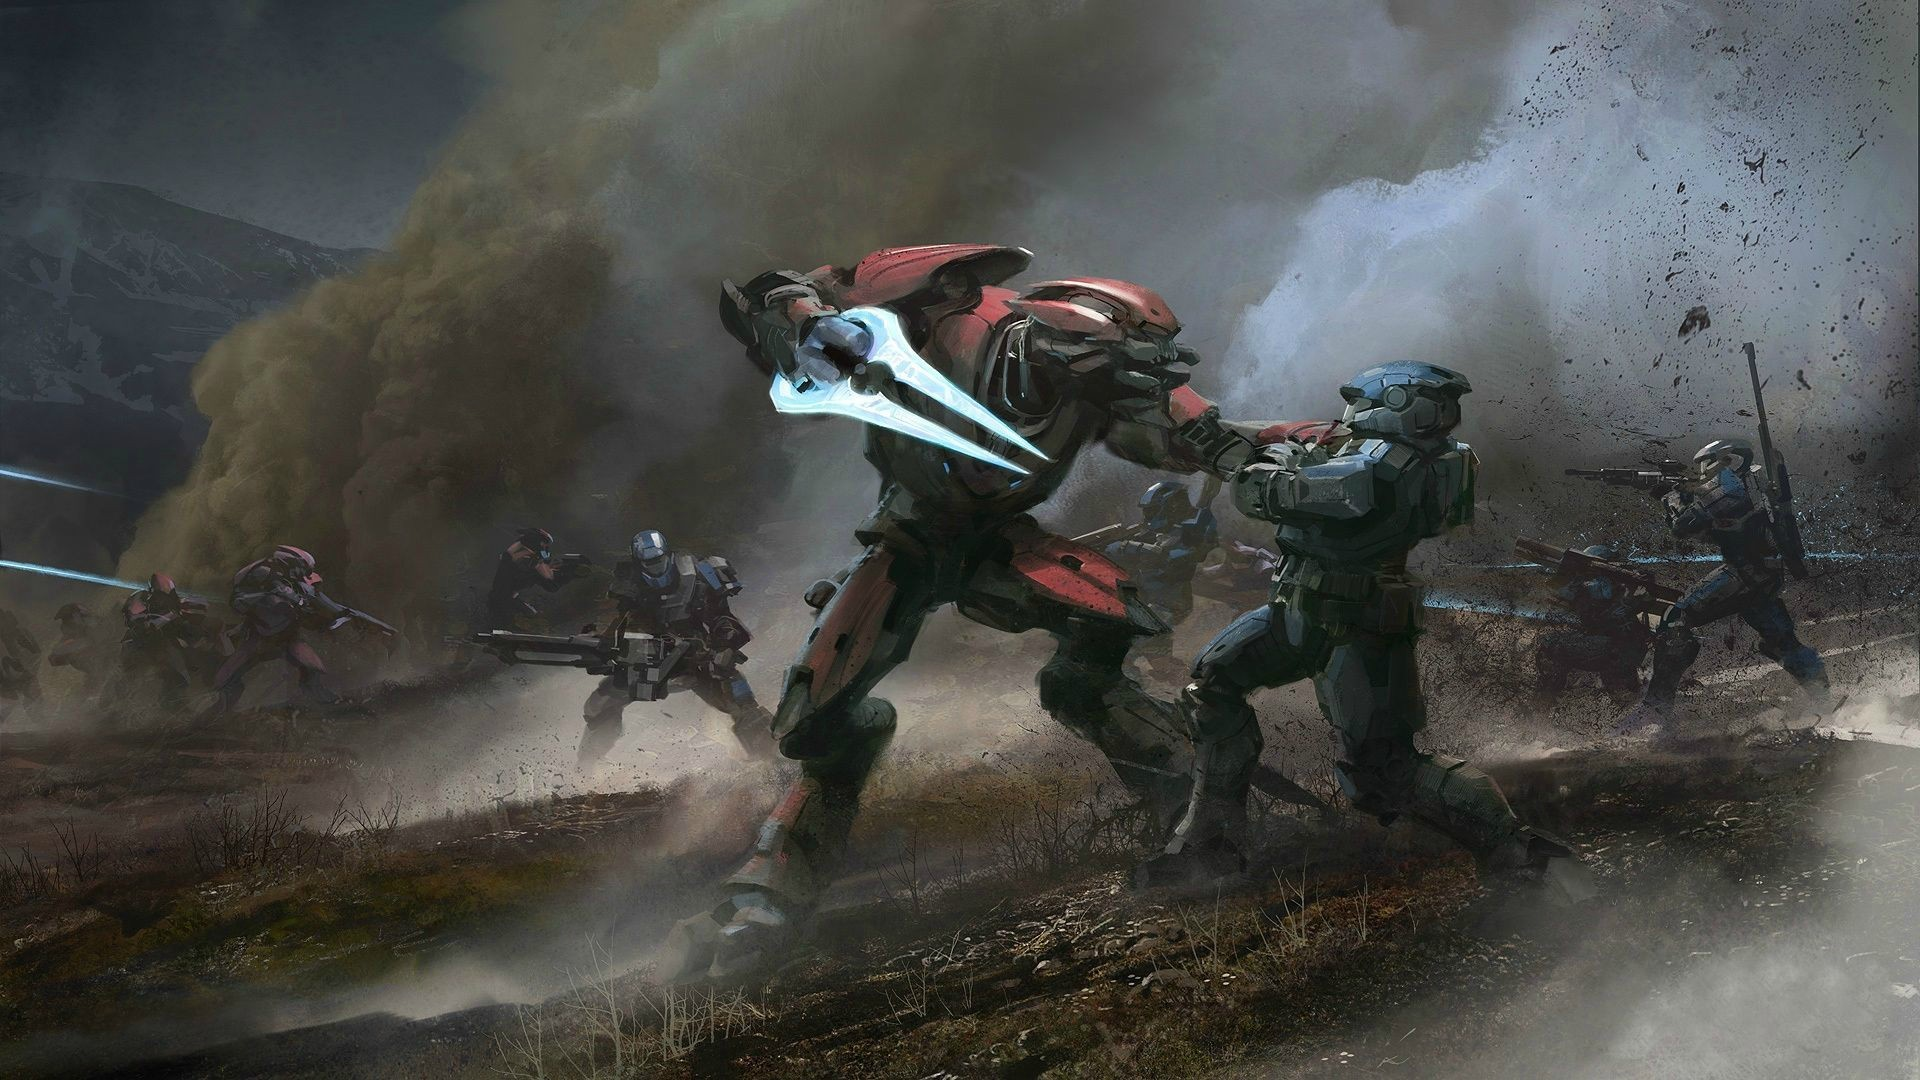 HALO: REACH MASTER CHIEF COLLECTION TRAILER ANALYSIS